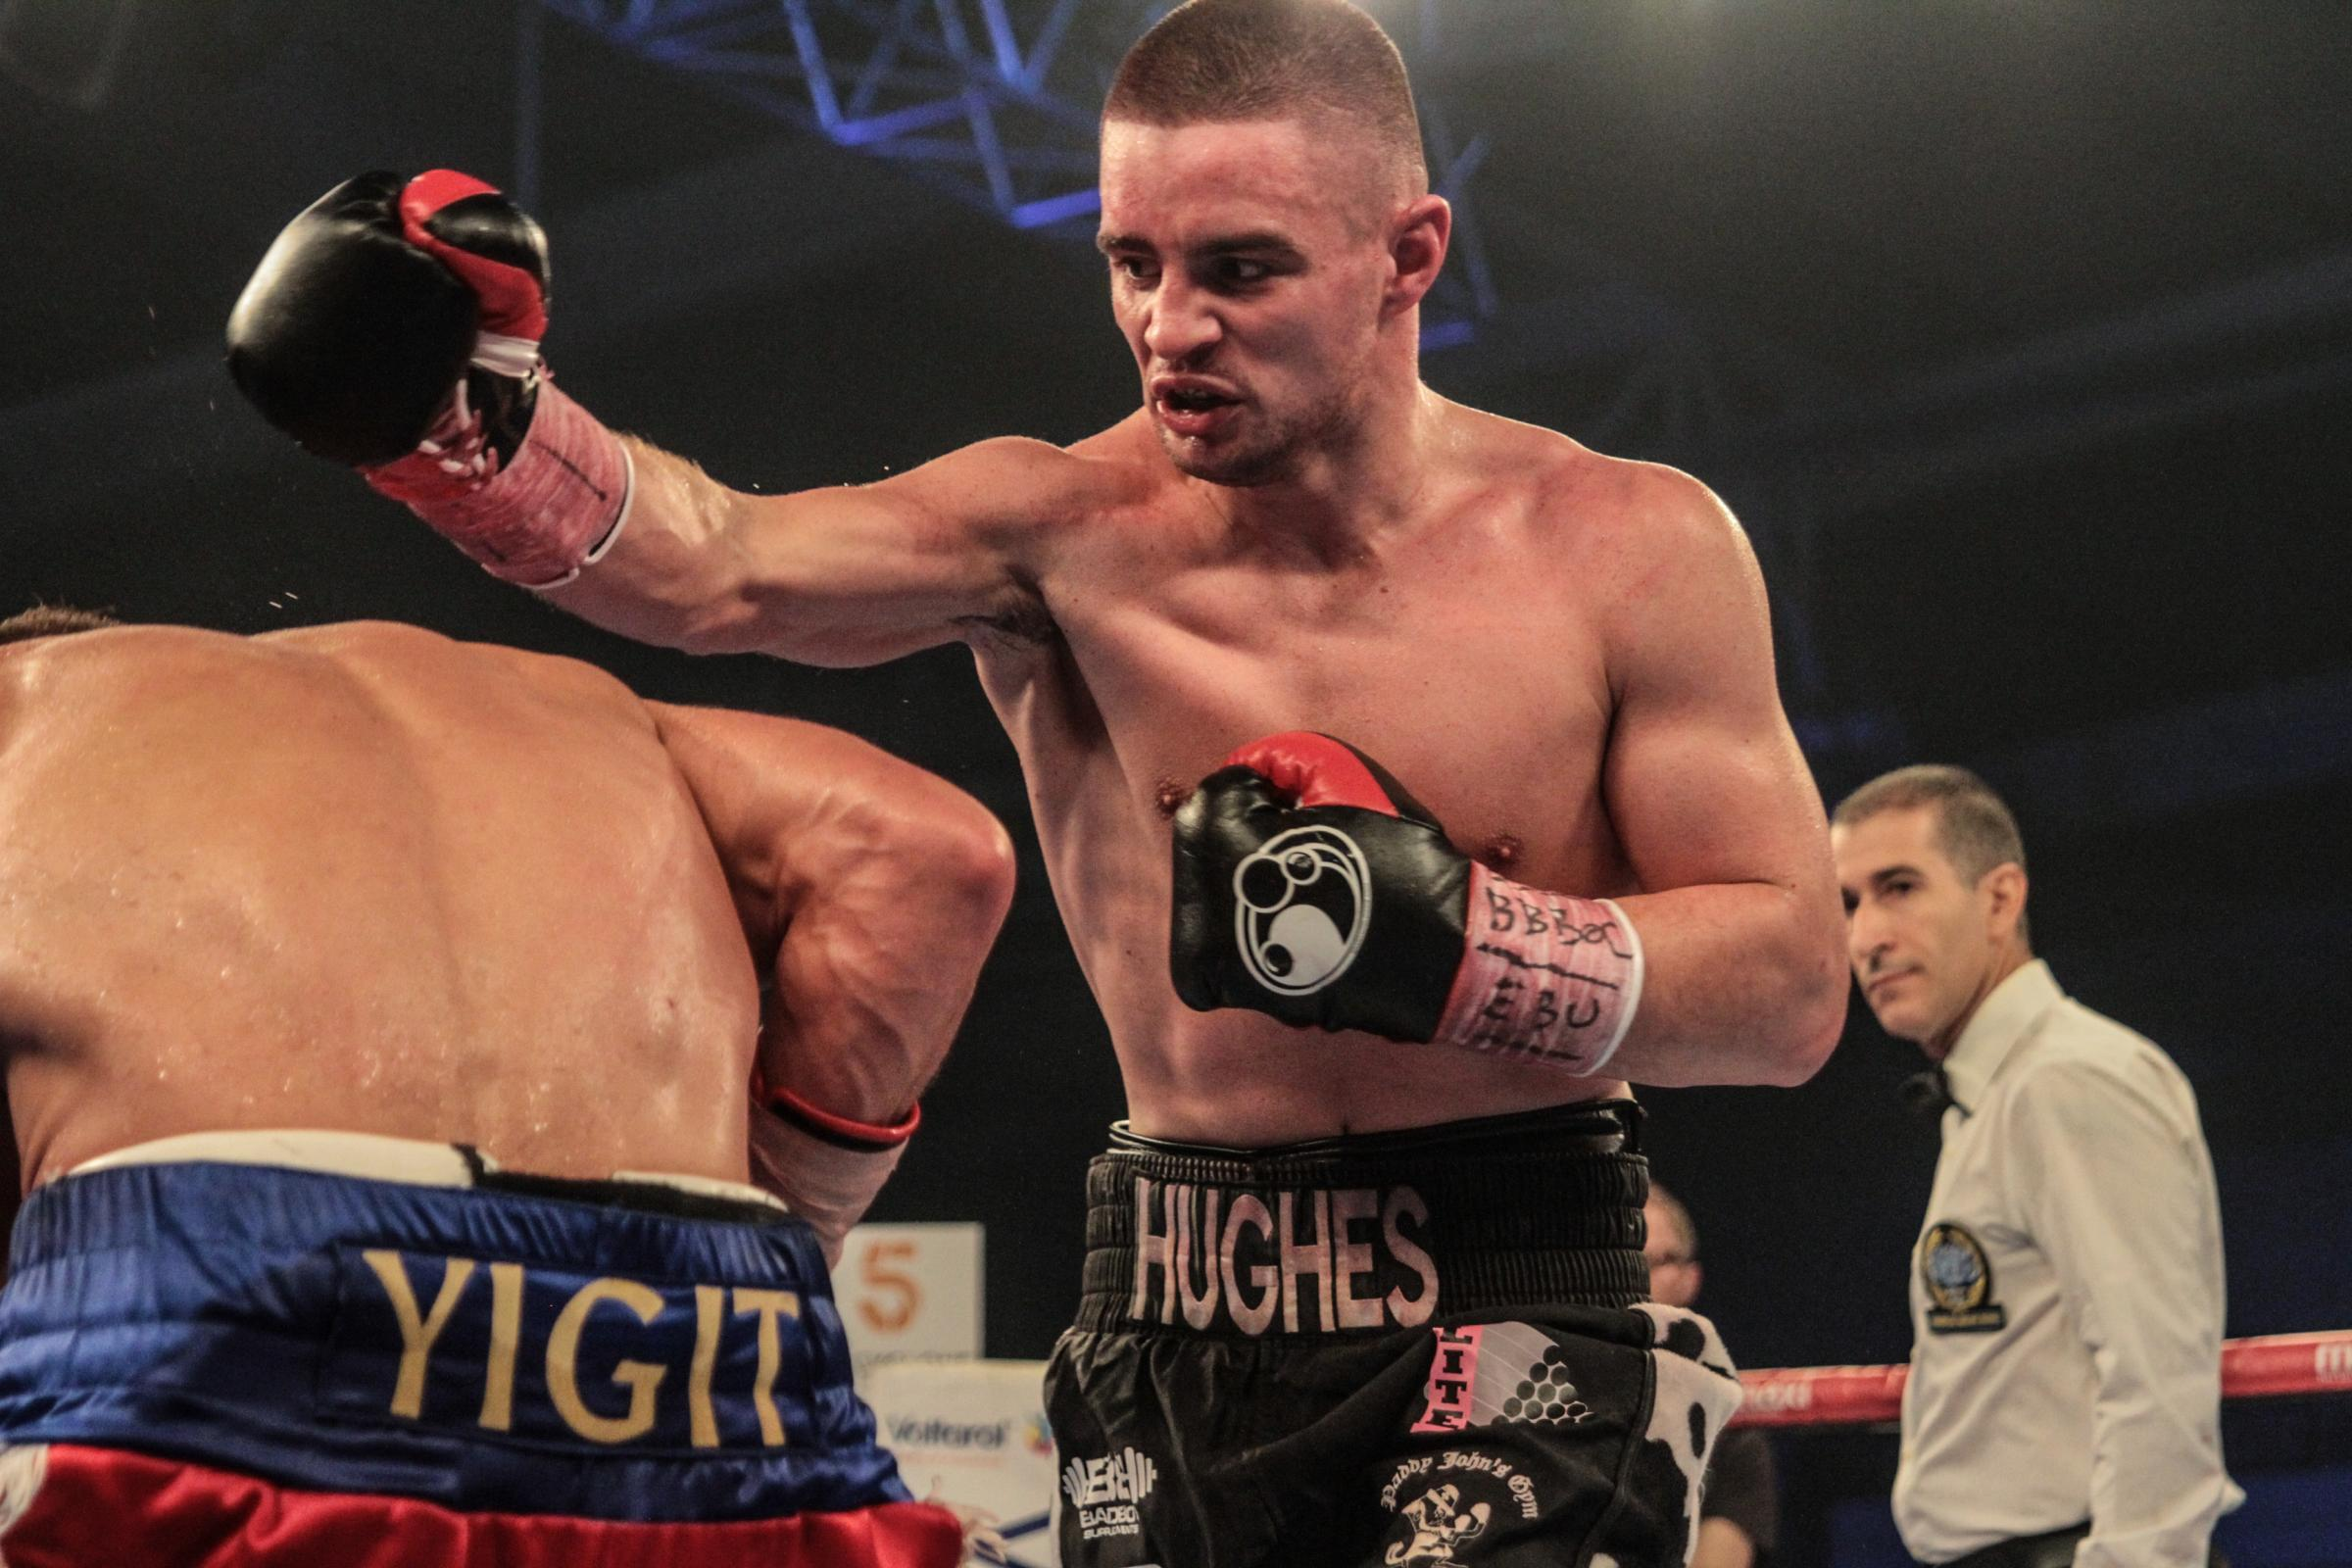 Joe Hughes in action against Anthony Yigit in Leicester on Saturday (Picture: NAOMI YOUD)